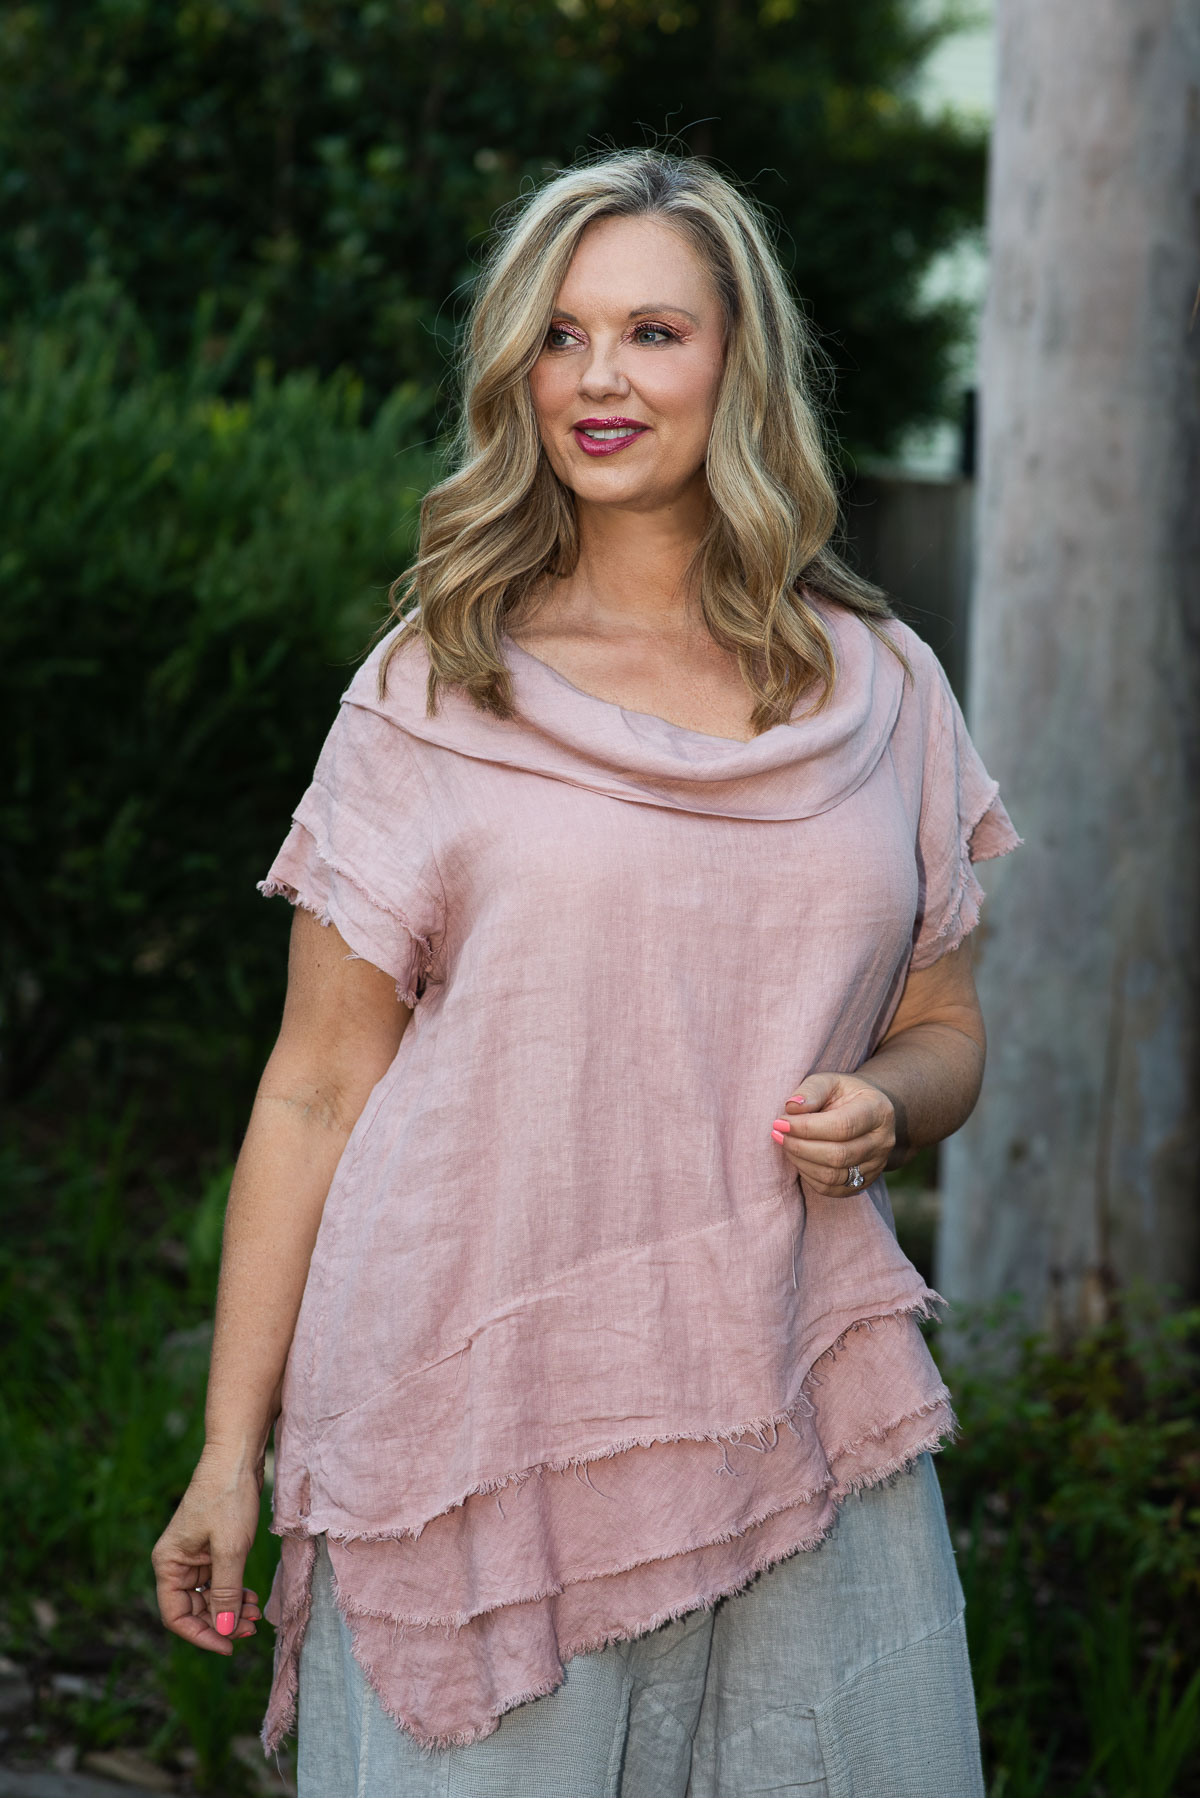 100% Linen clothing this is a short sleeve assymetrical top with a ruffle tier at the bottom and cowl neck